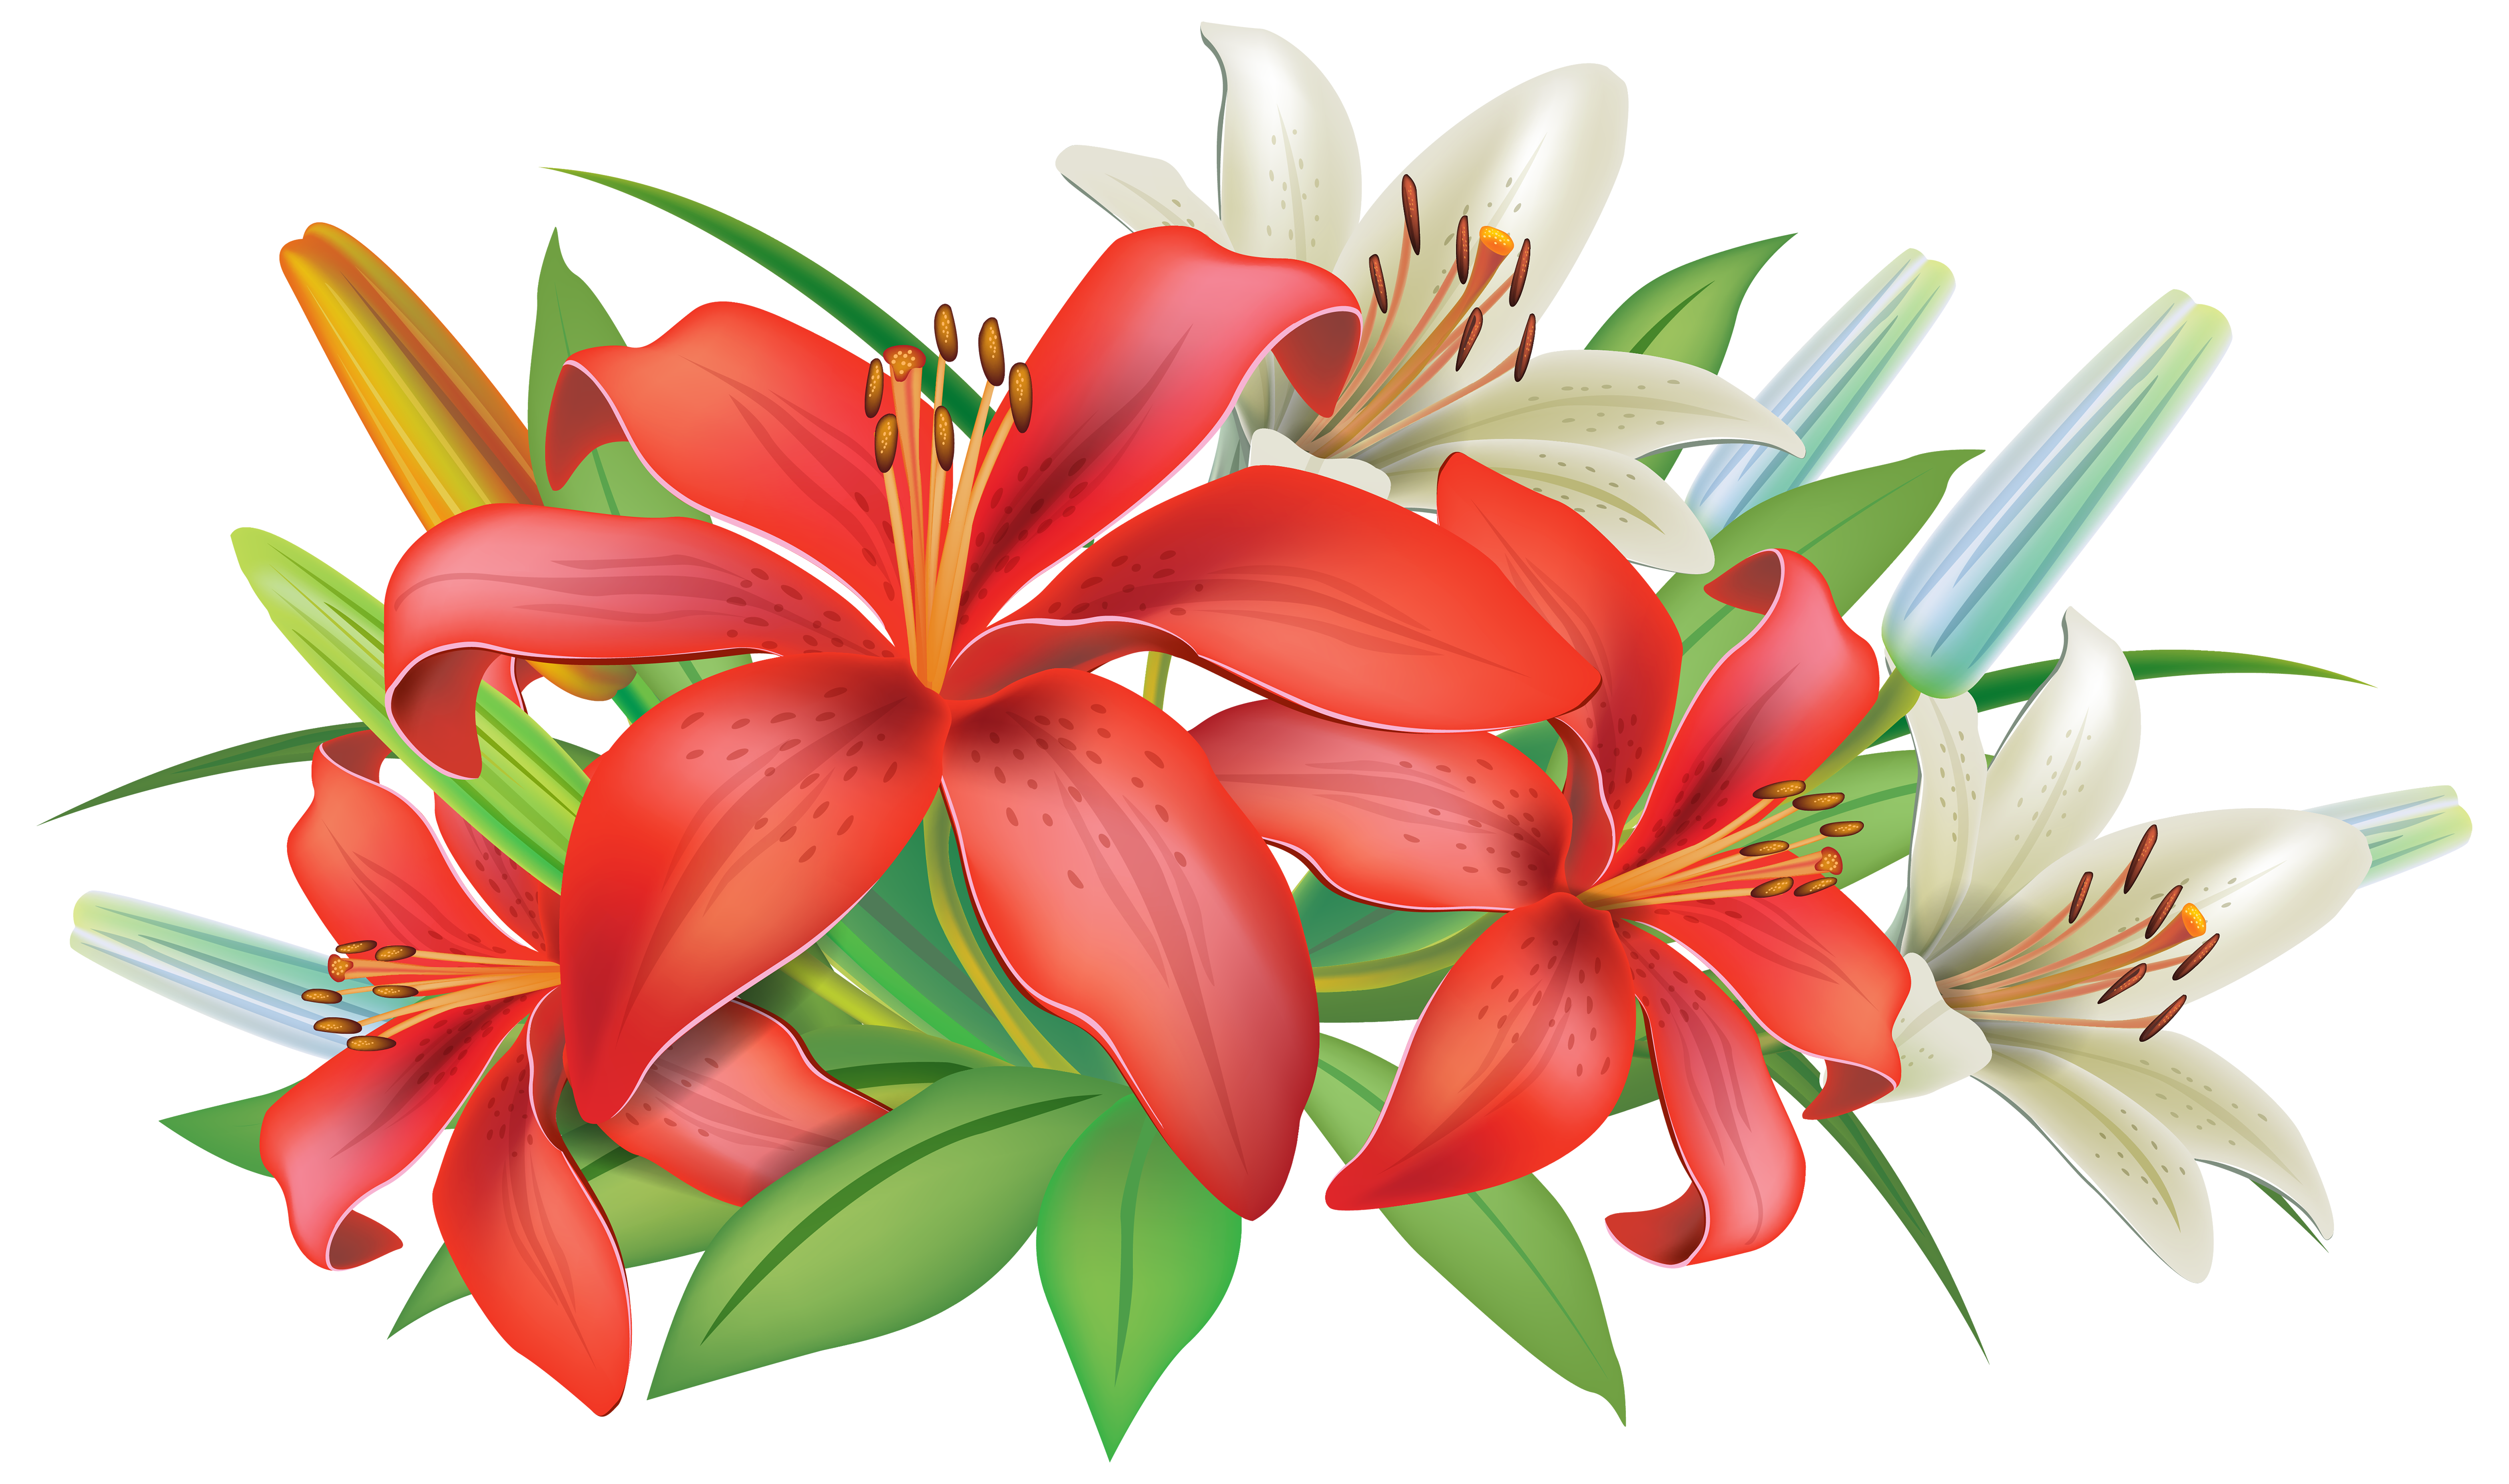 Lilies clipart. Red flowers decoration png